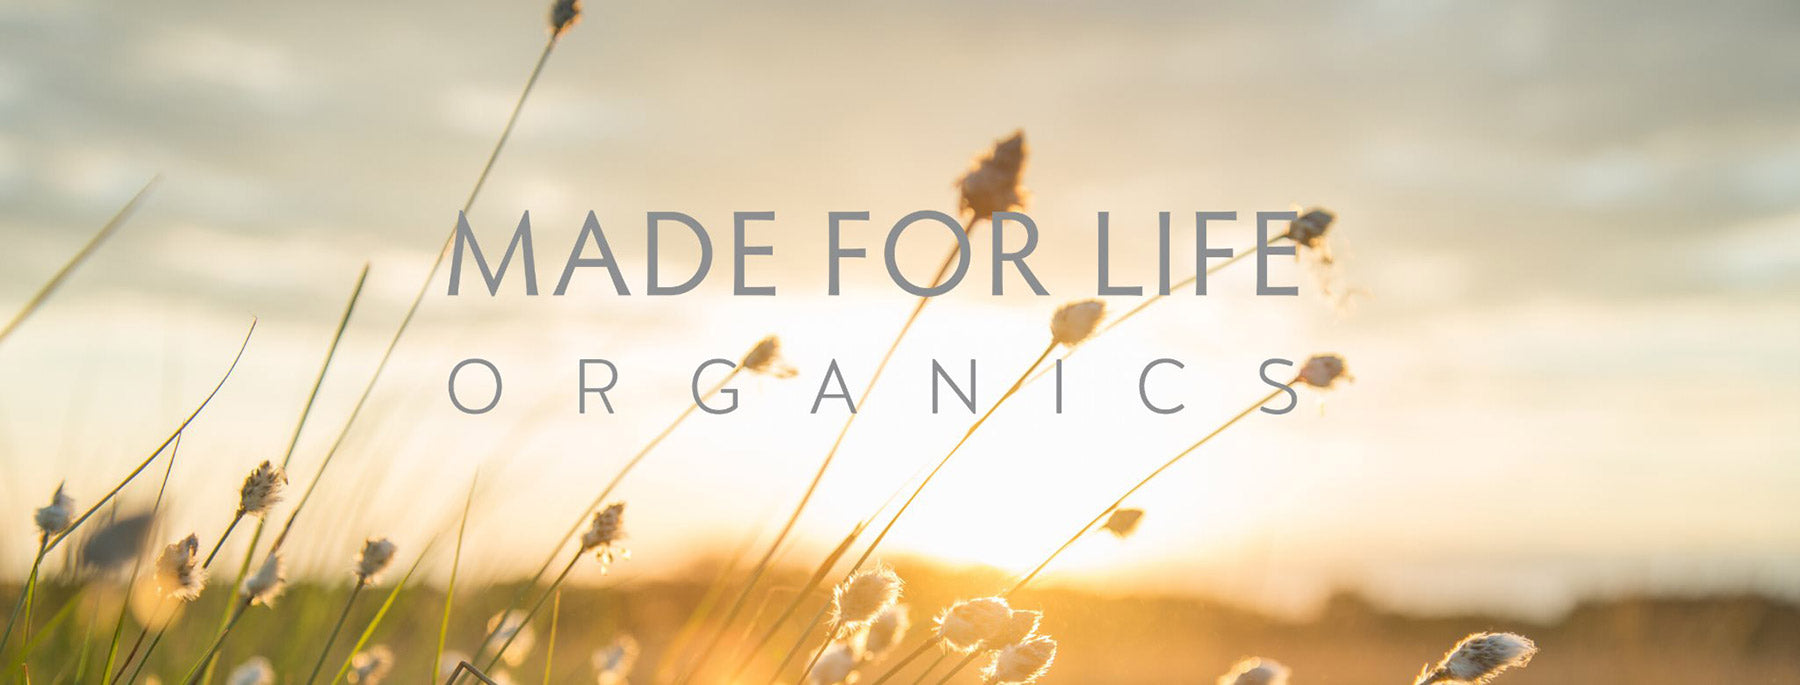 Made for life organic skincare header image